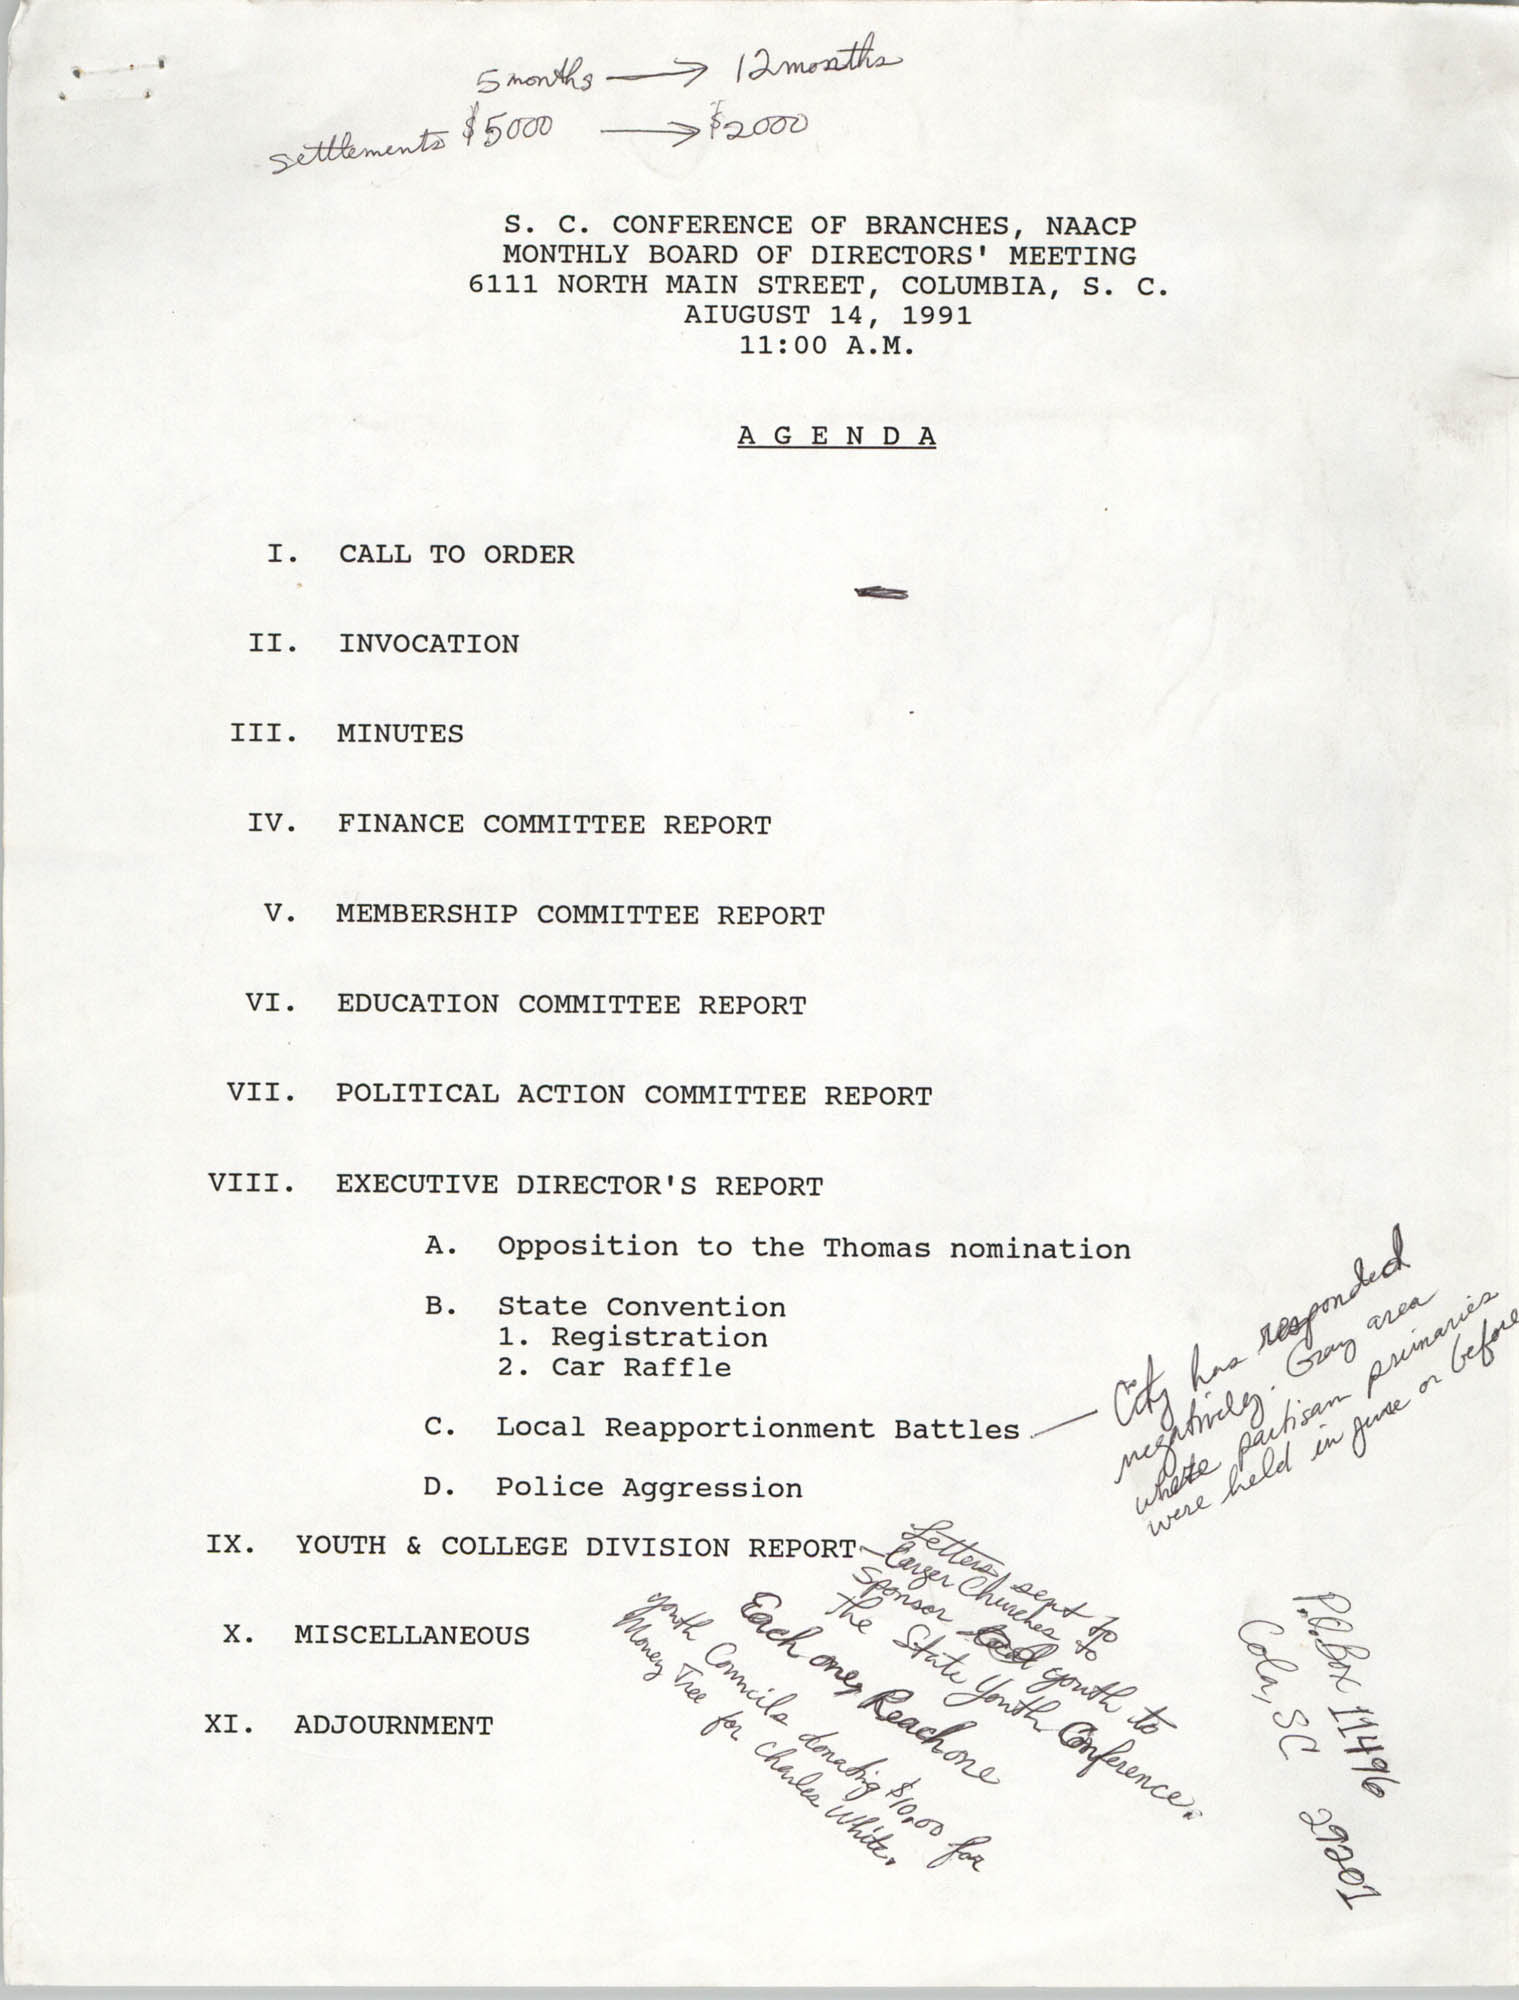 Agenda, South Carolina Conference of Branches of the NAACP, August 14, 1991